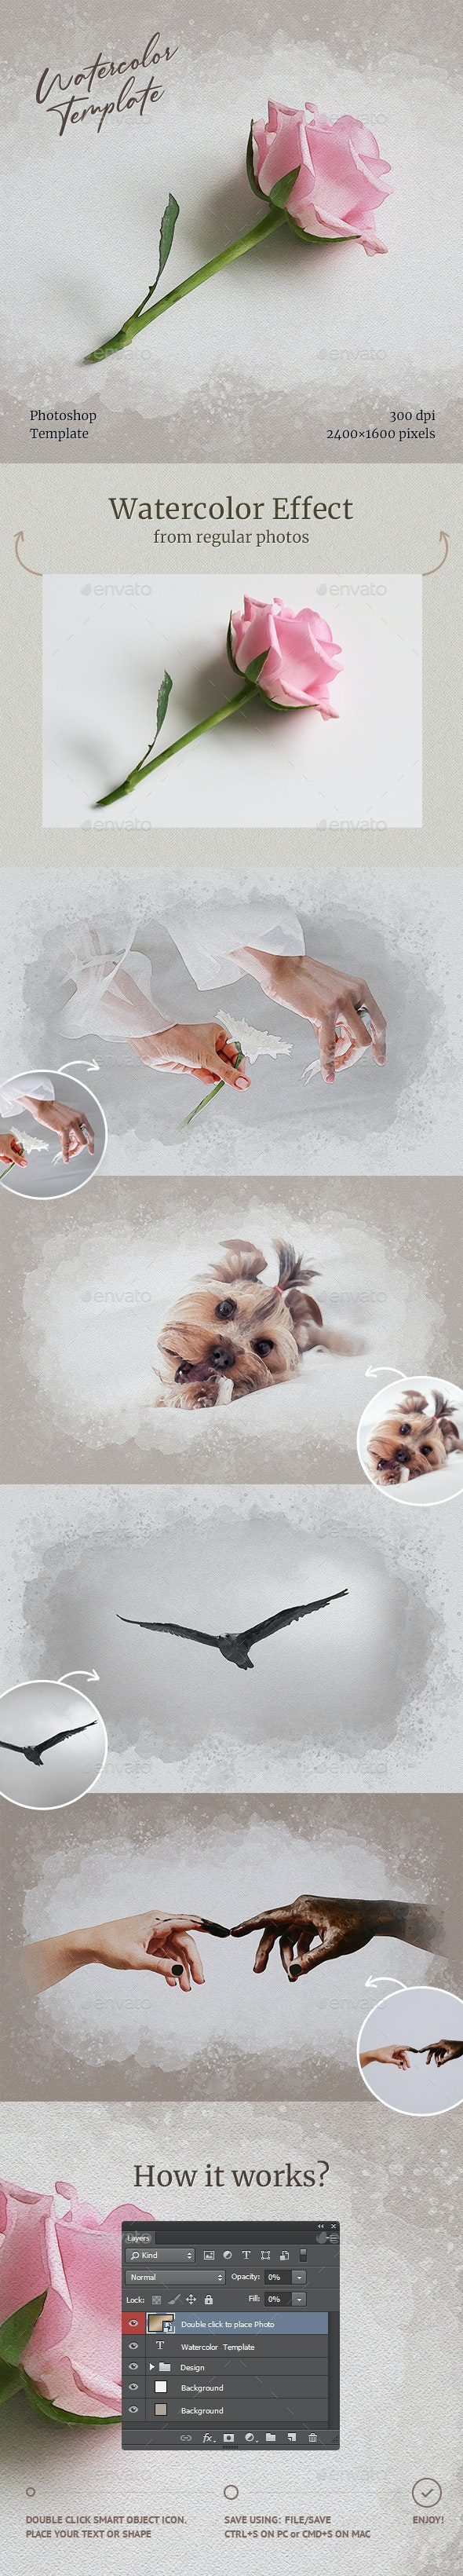 Watercolor from Photo Template - Artistic Photo Templates